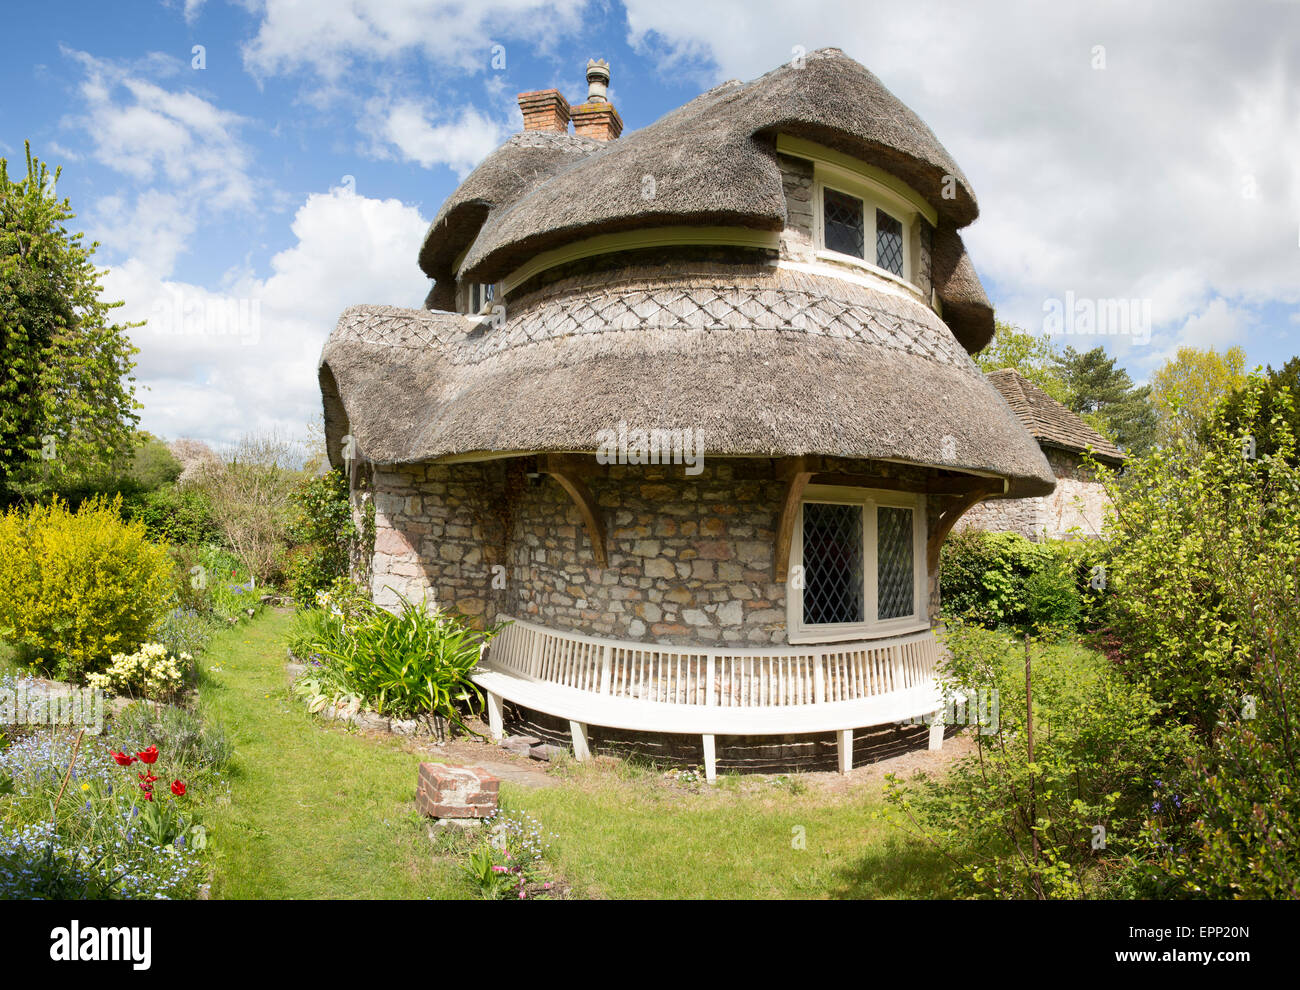 Circular Cottage Blaise Hamlet - a collection of pretty cottages in the vernacular style on the Blaise estate in - Stock Image